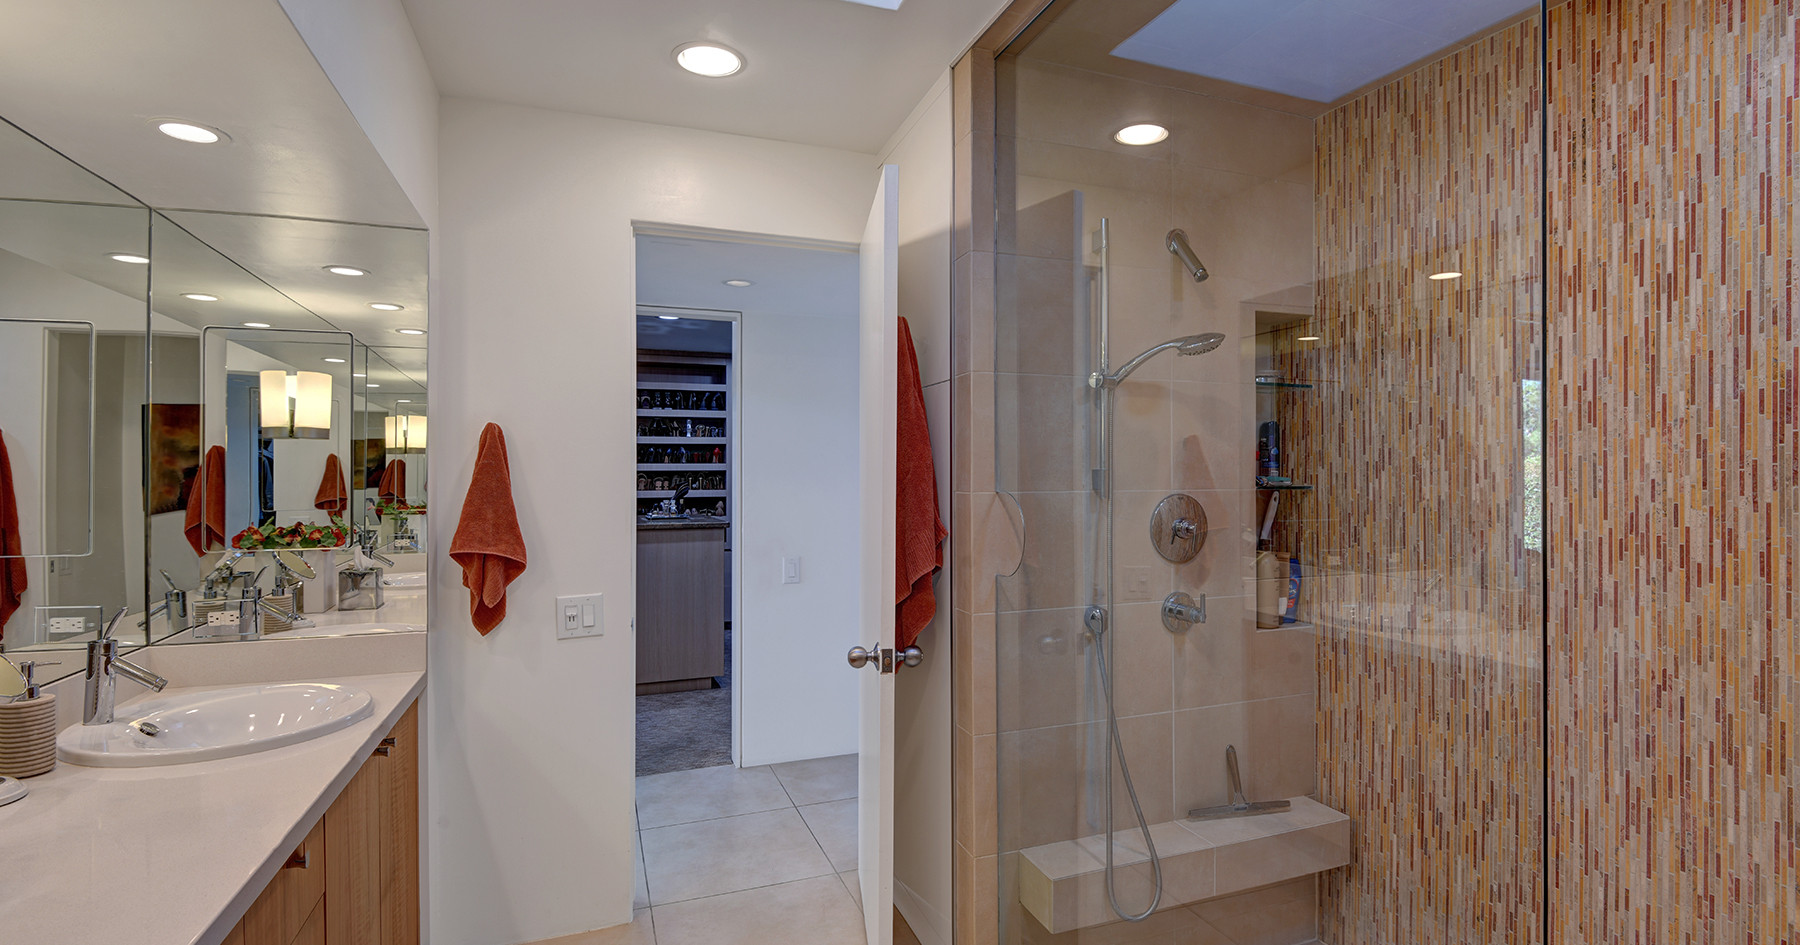 MASTER BATHROOM REVERSE TO WALK IN CLOSE